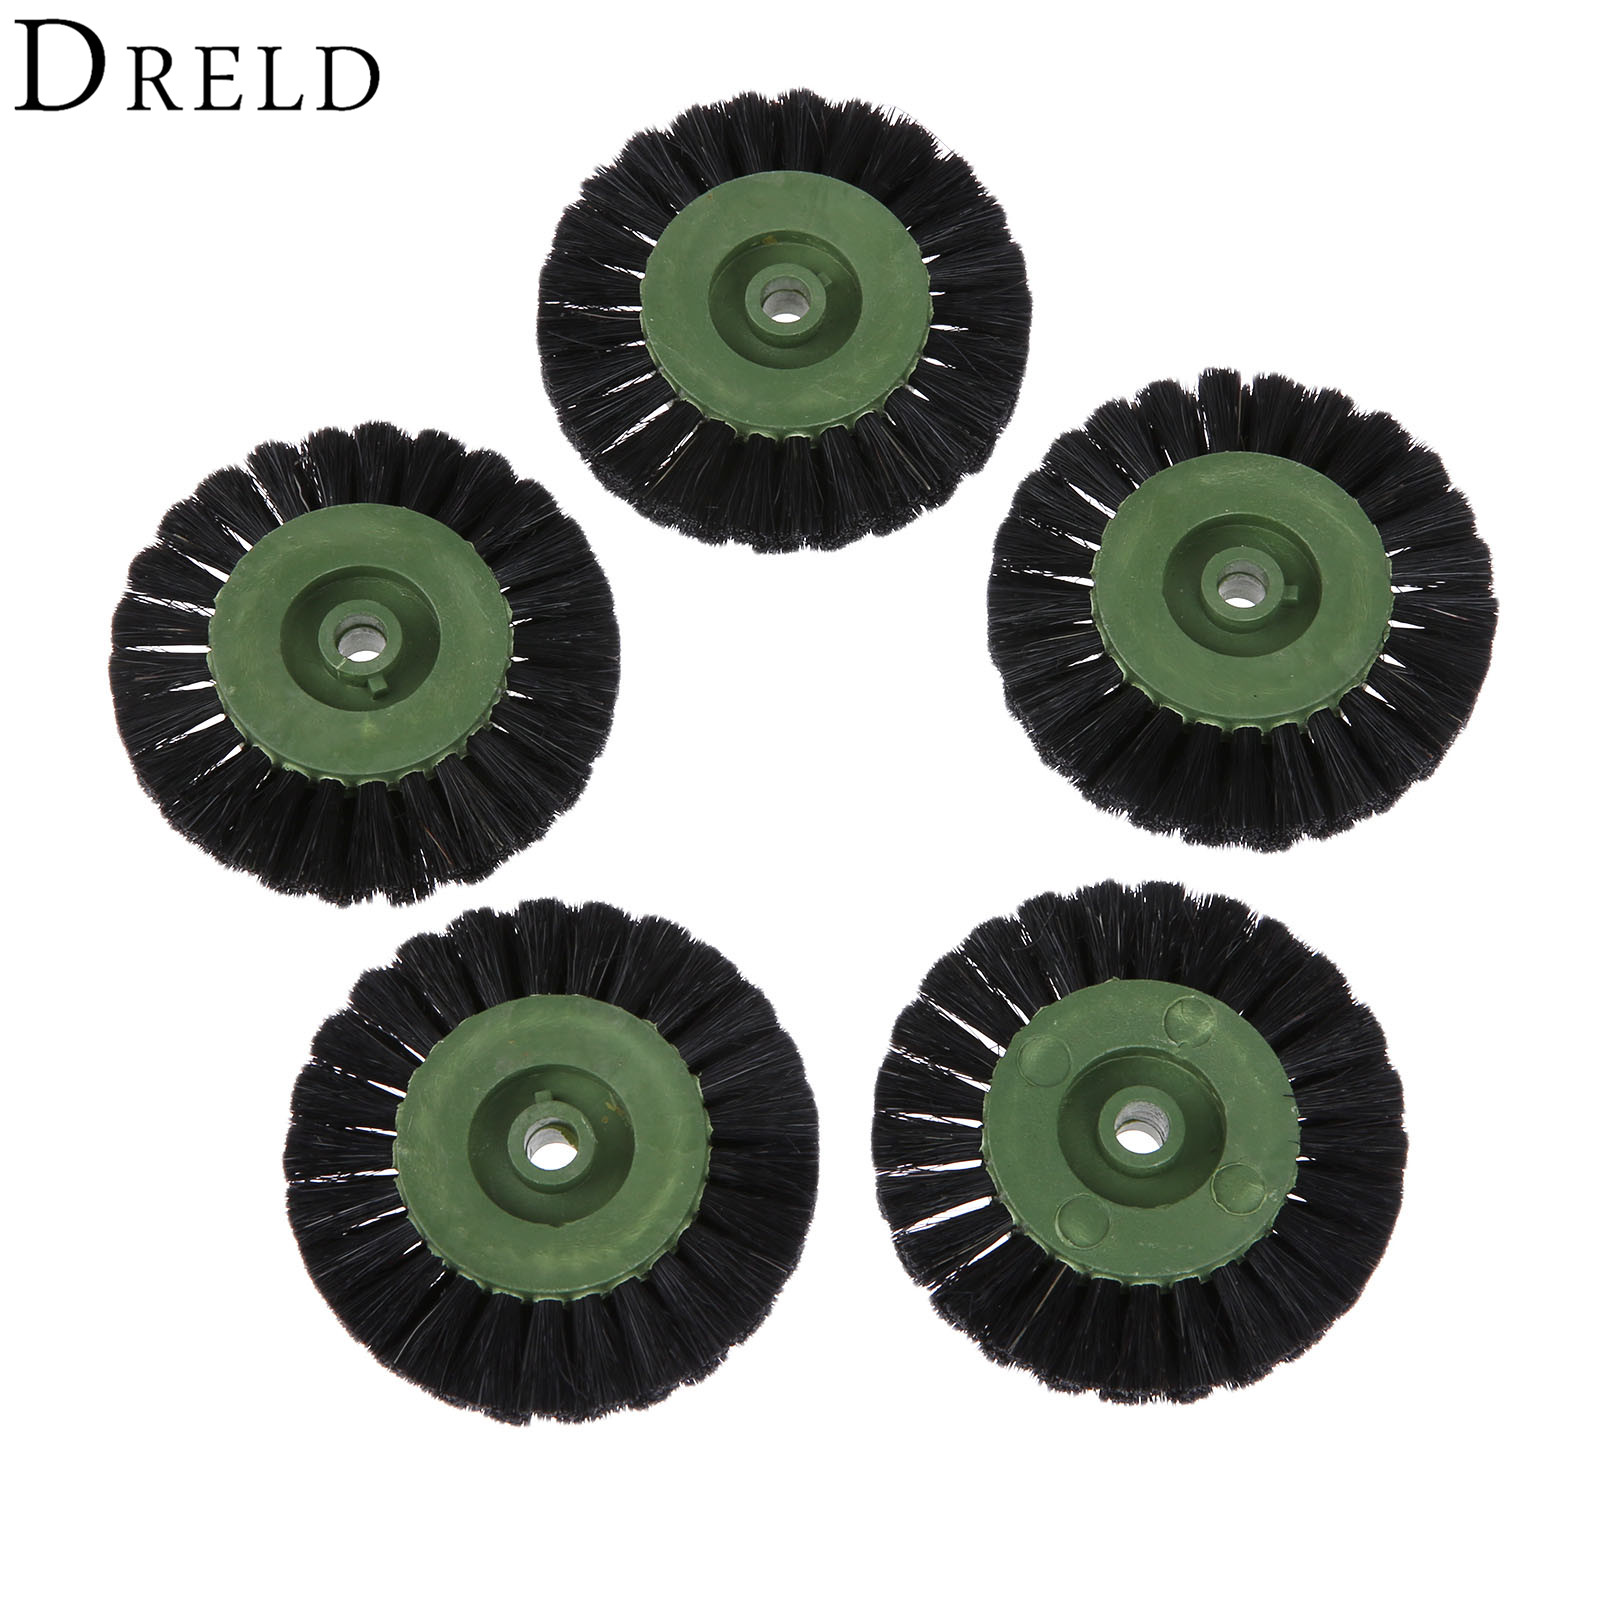 DRELD 5Pcs Dremel Accessories 60mm Grinding Brush Head Abrasive Wheel Black Buffing Polishing Wheels For Dremel Rotary Tool